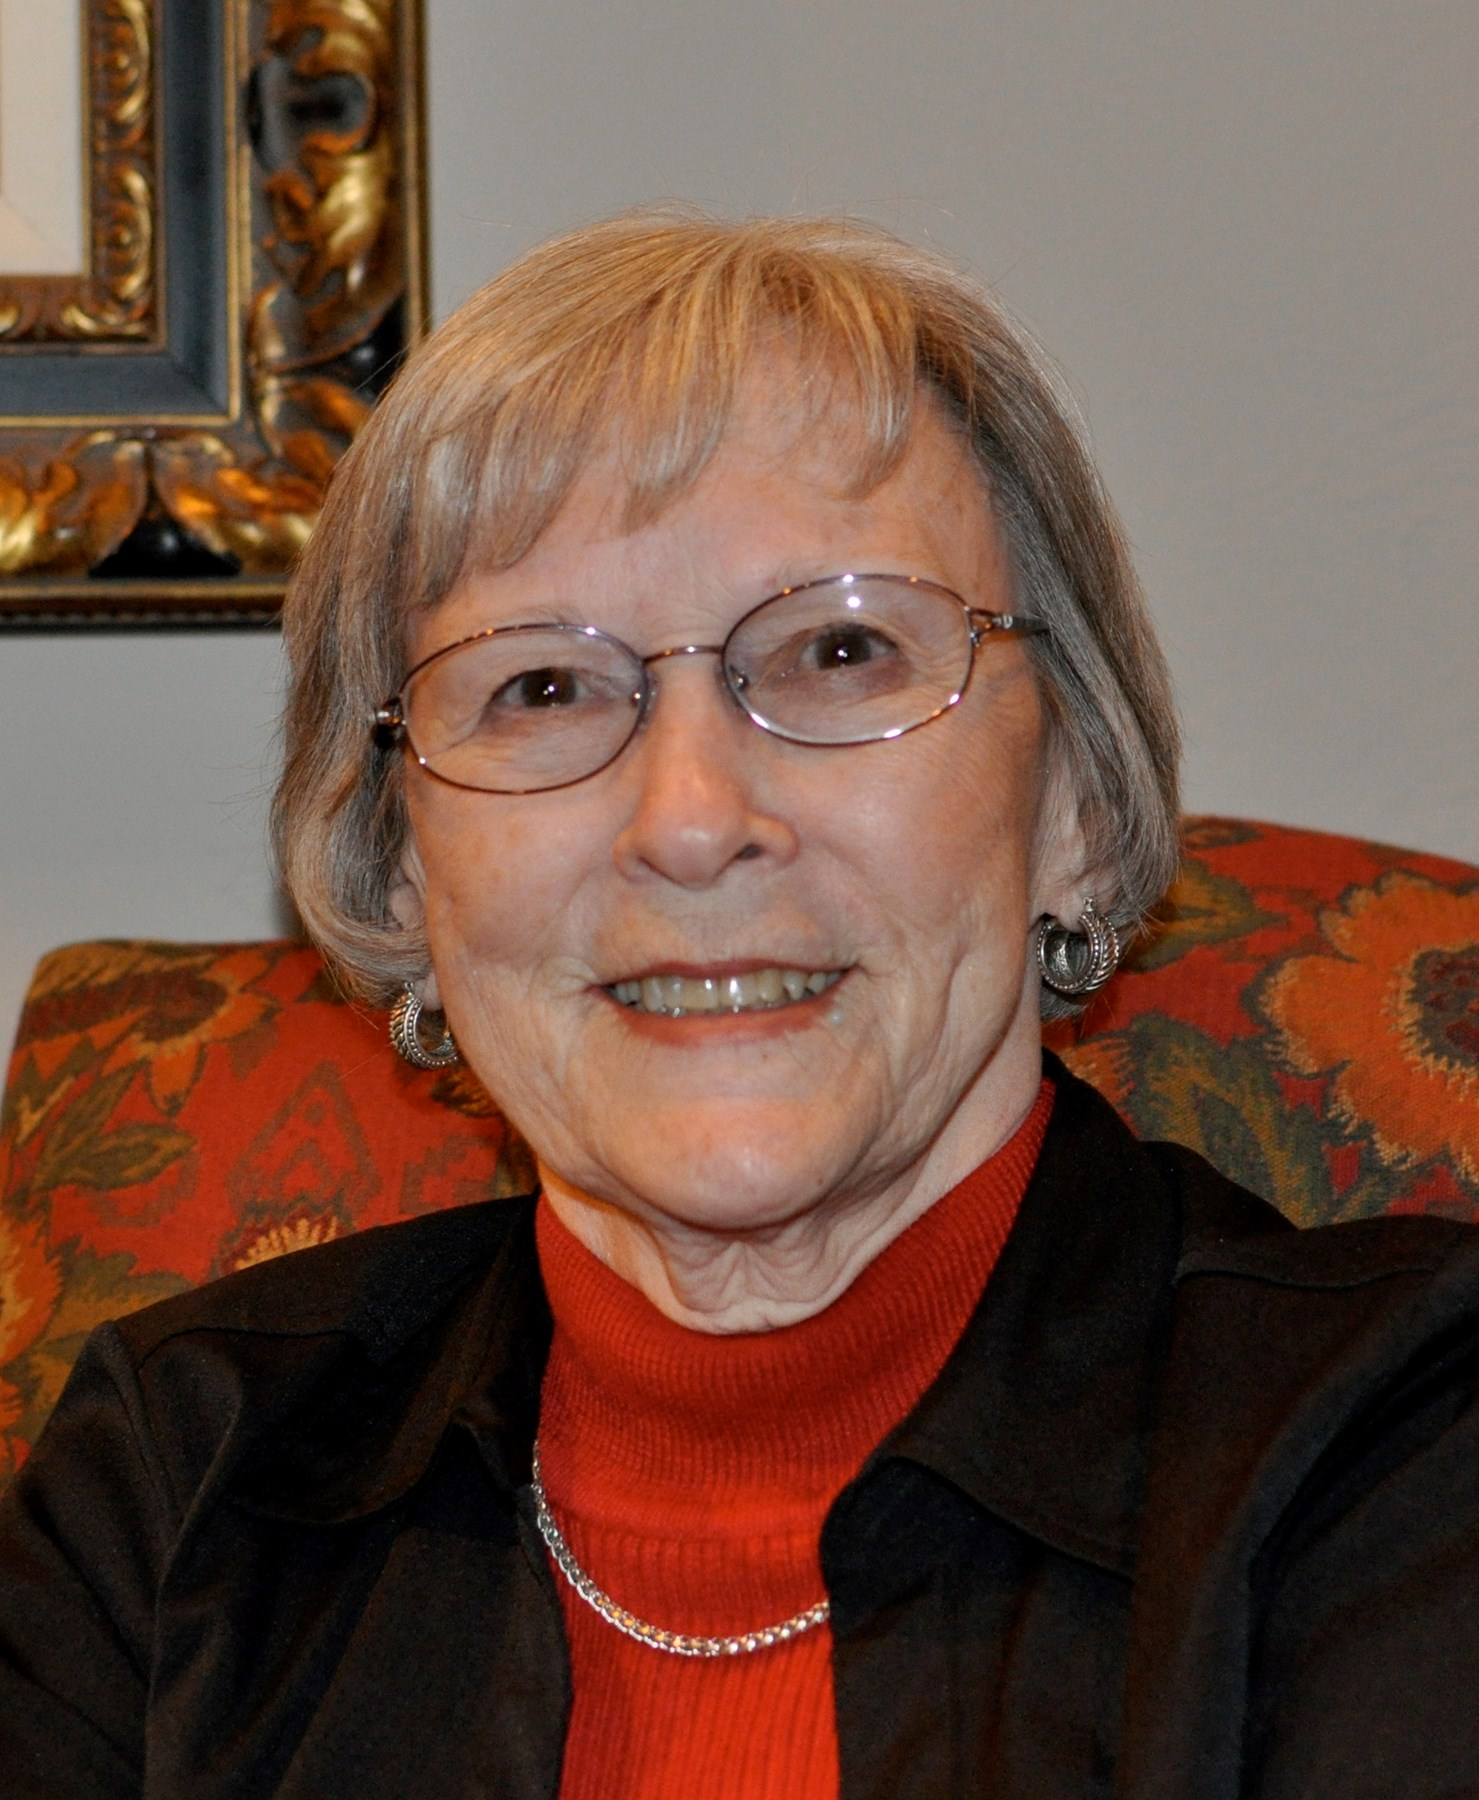 Discussion on this topic: Marjorie Stapp, grace-thompson/